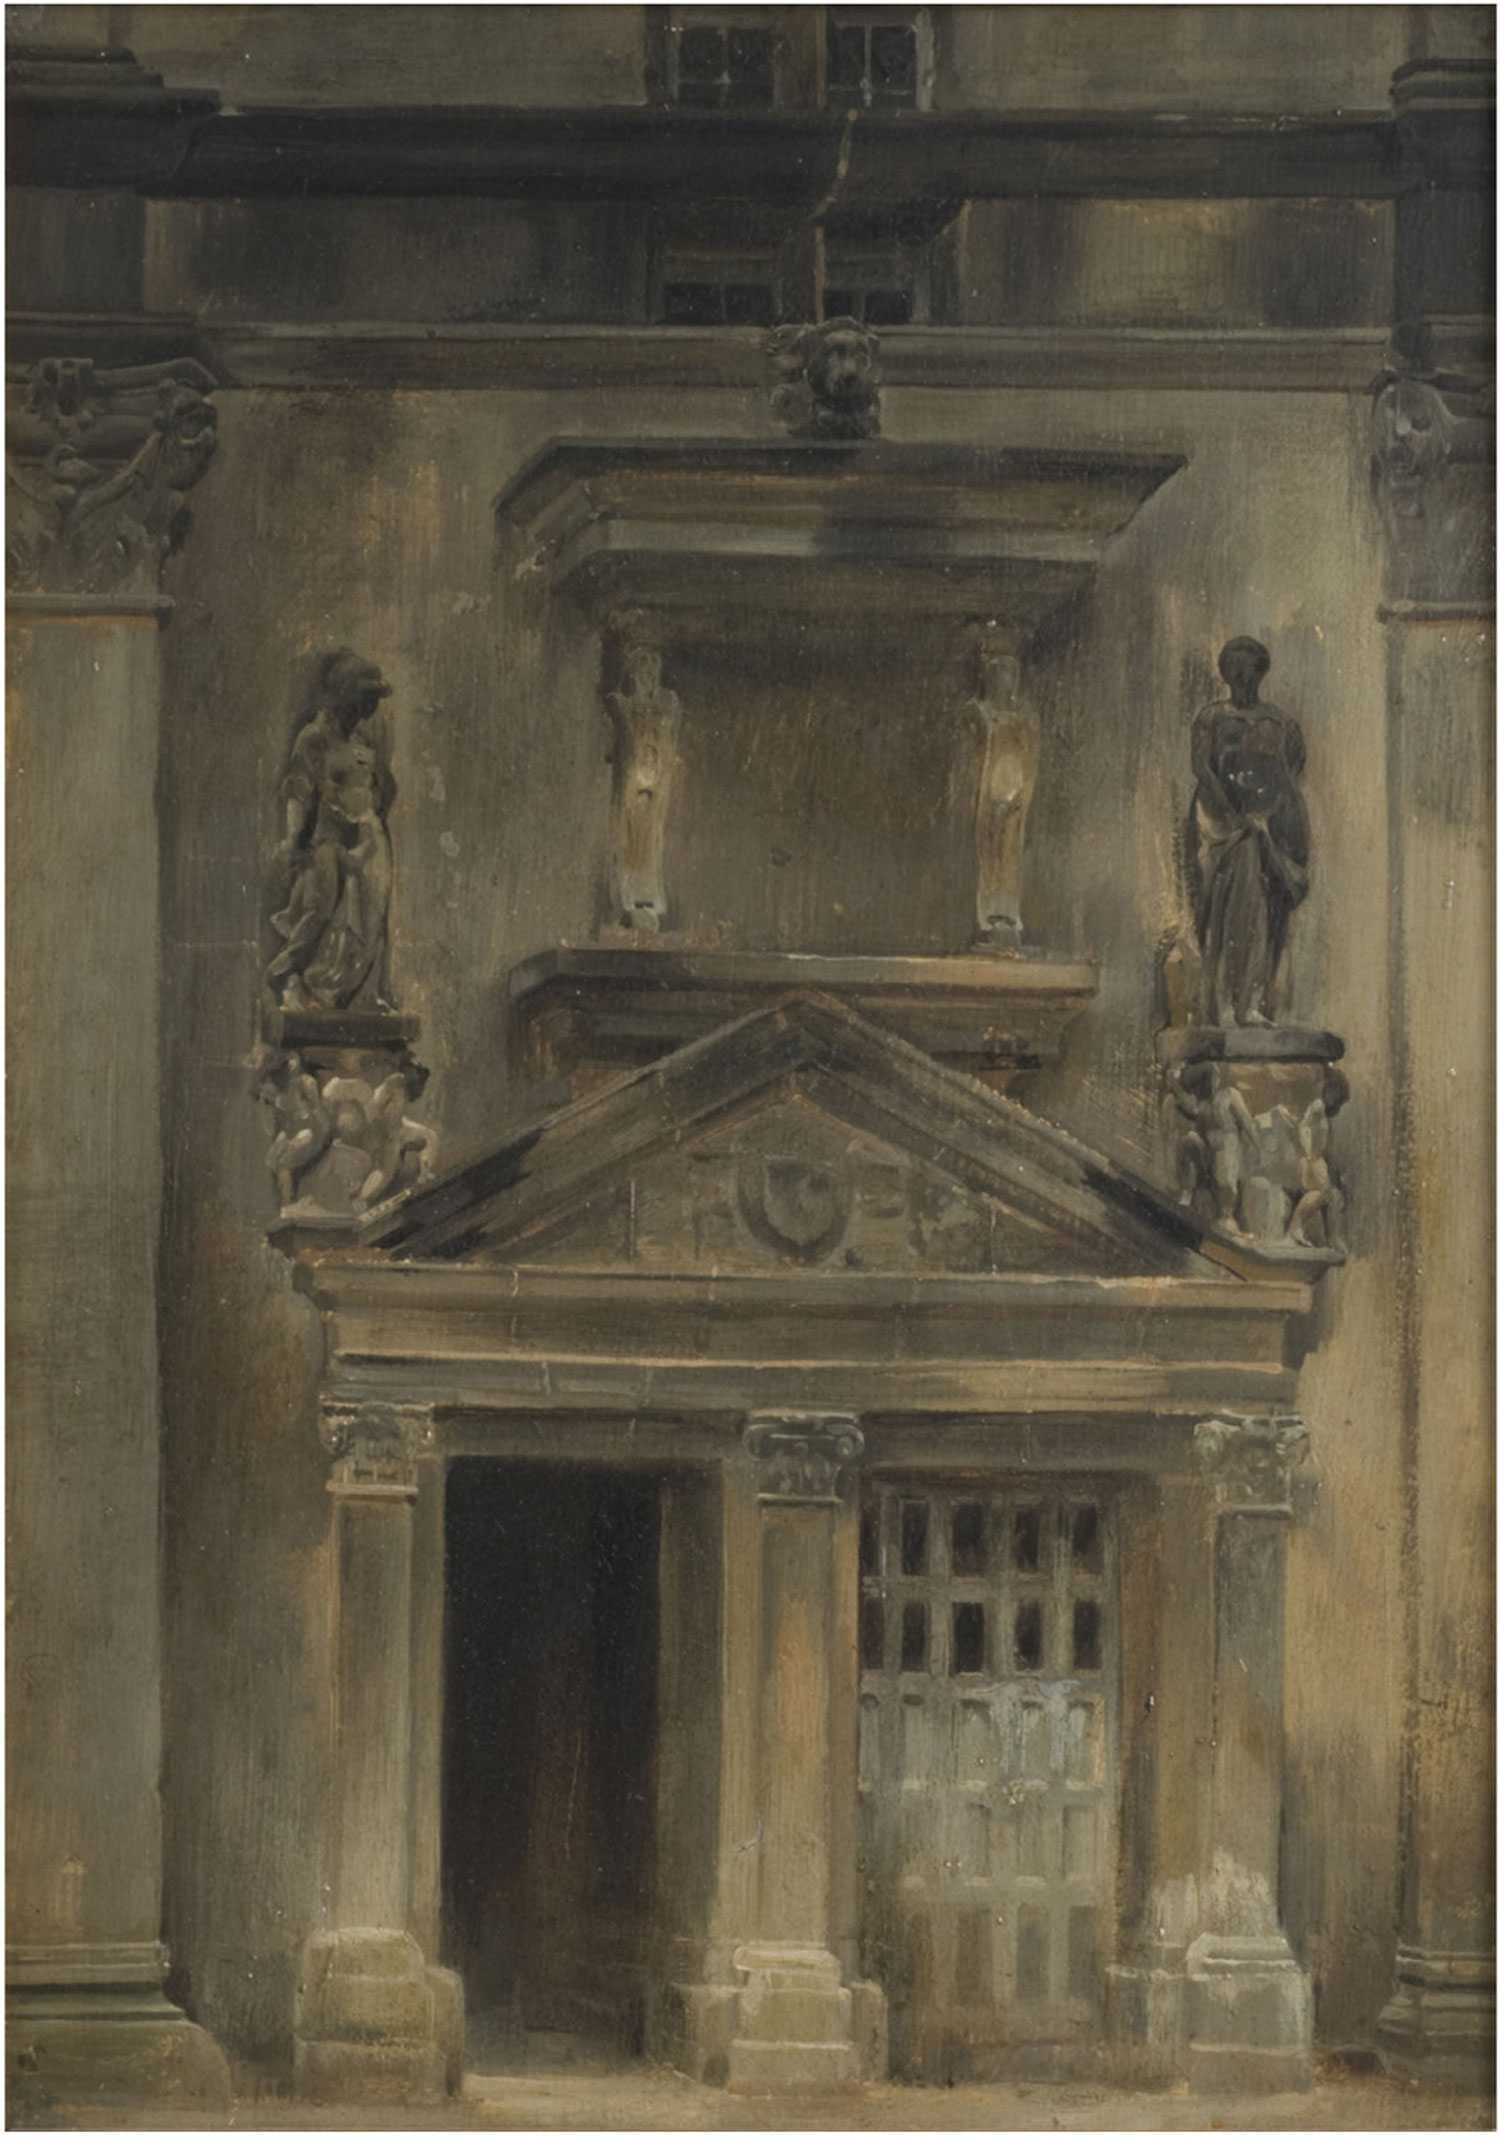 Architectural Study (Door of the Francis I Staircase, Oval Court, Fontainebleau)